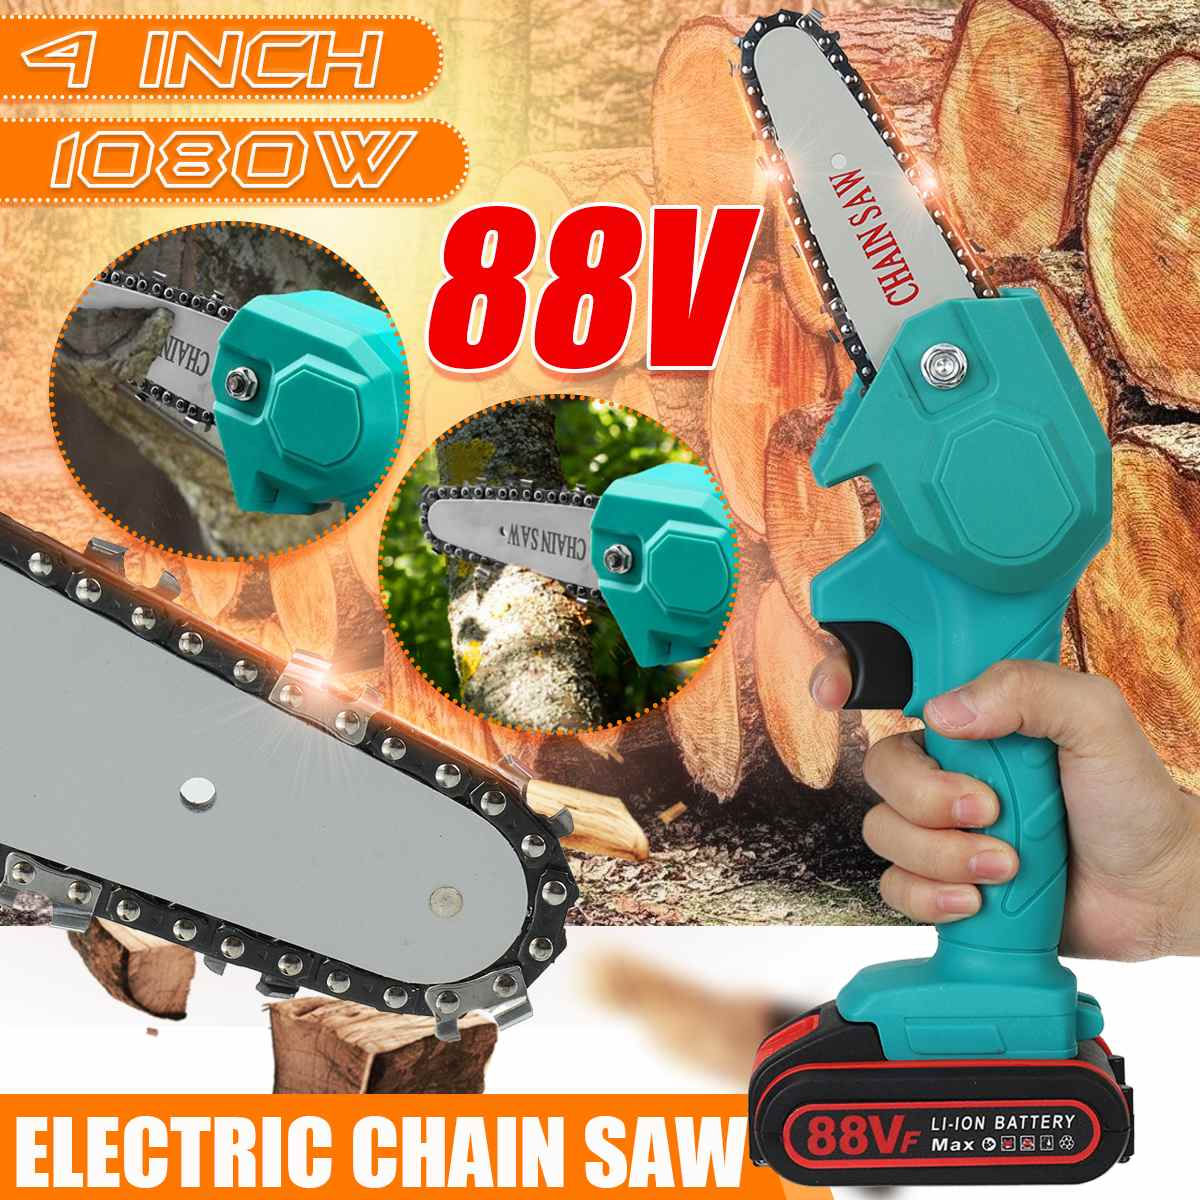 88V 1080W Mini Electric Chain Saw 4 Inch With 2 Battery Rechargeable Woodworking Pruning One-handed Garden Logging Power Tool